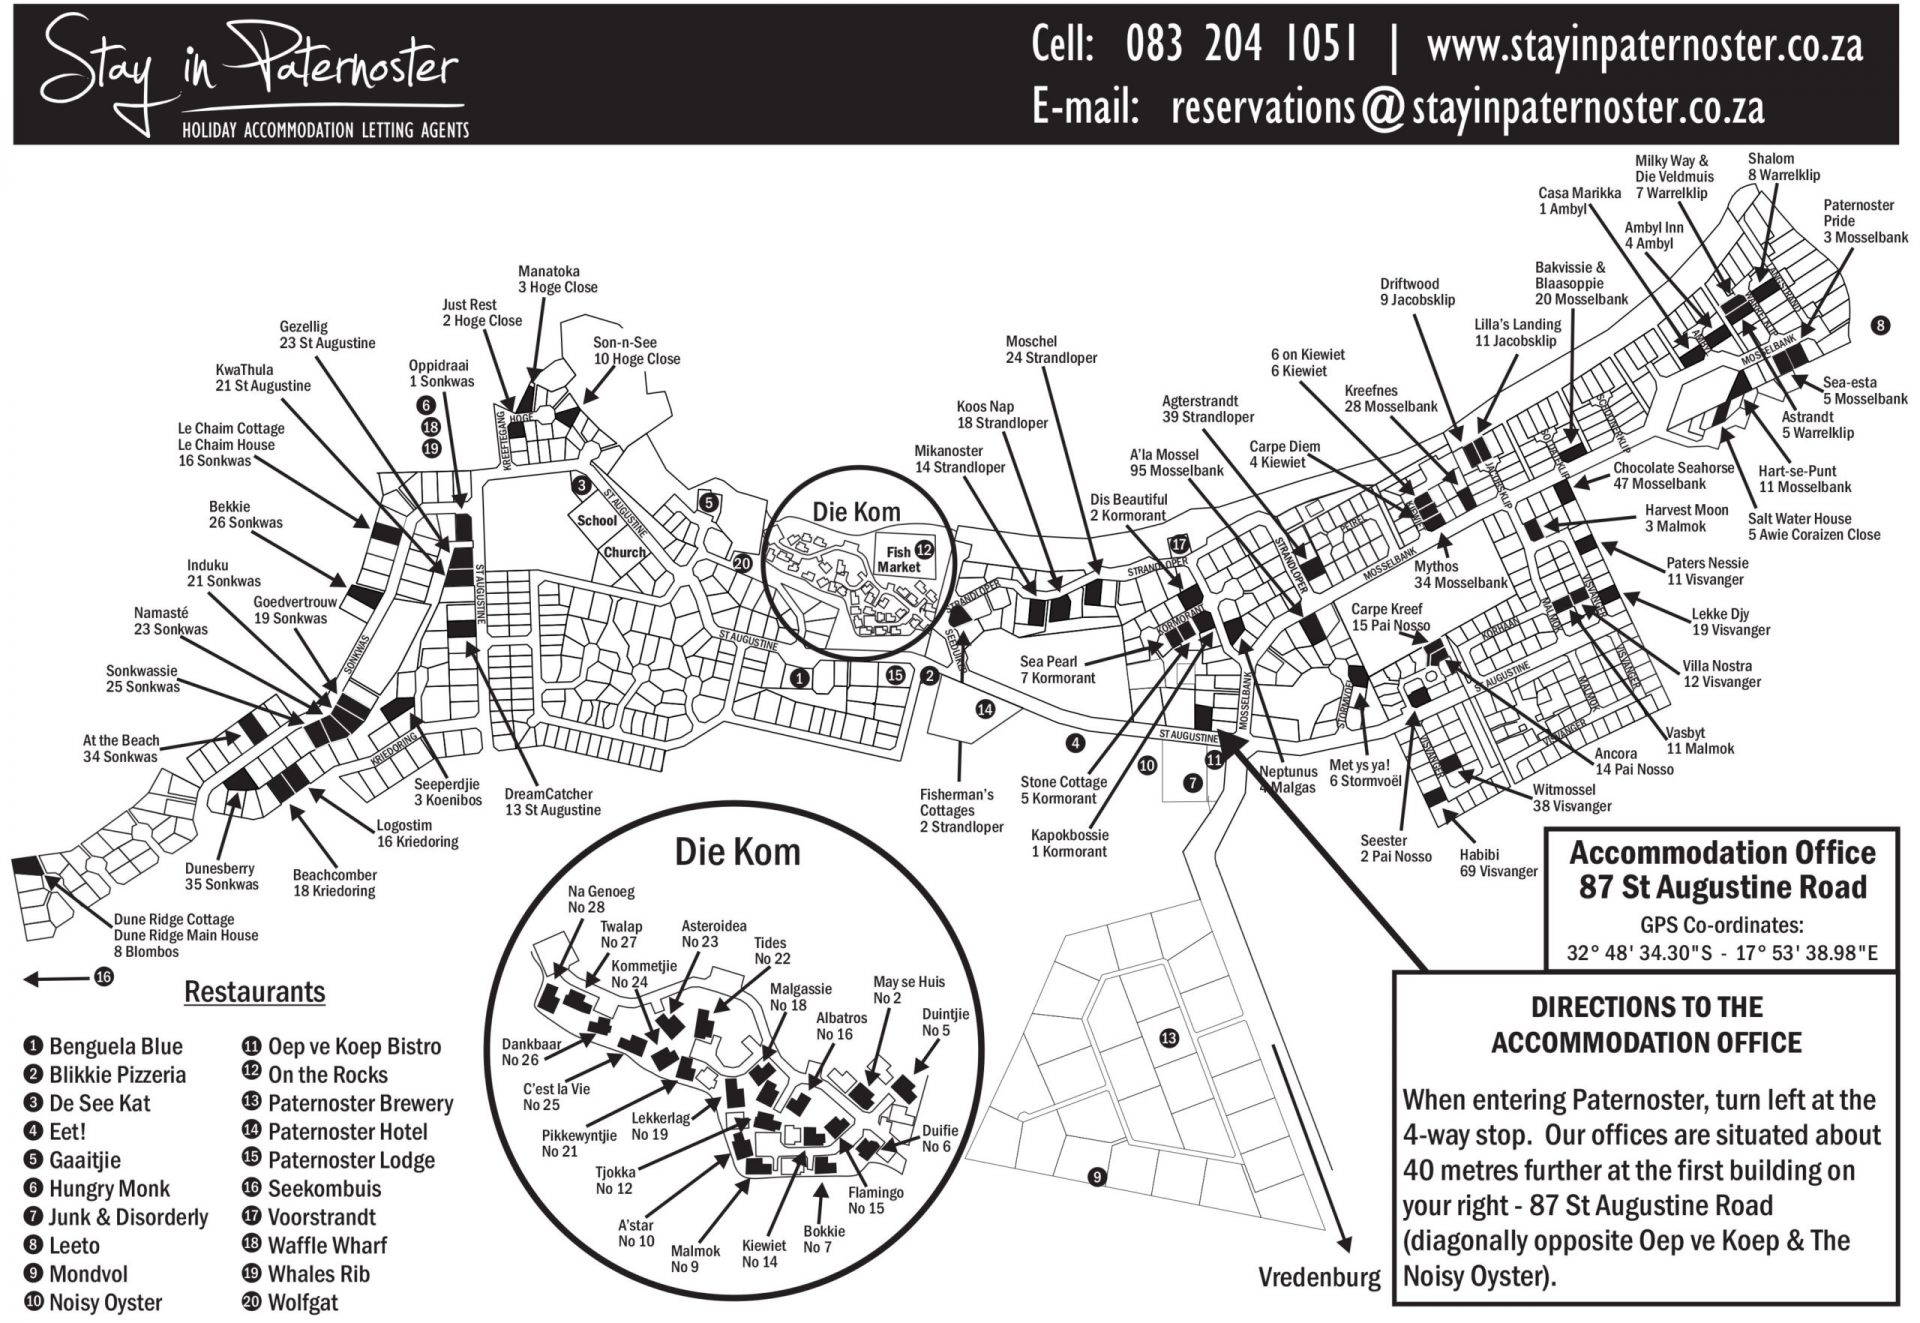 Accommodation map for Paternoster